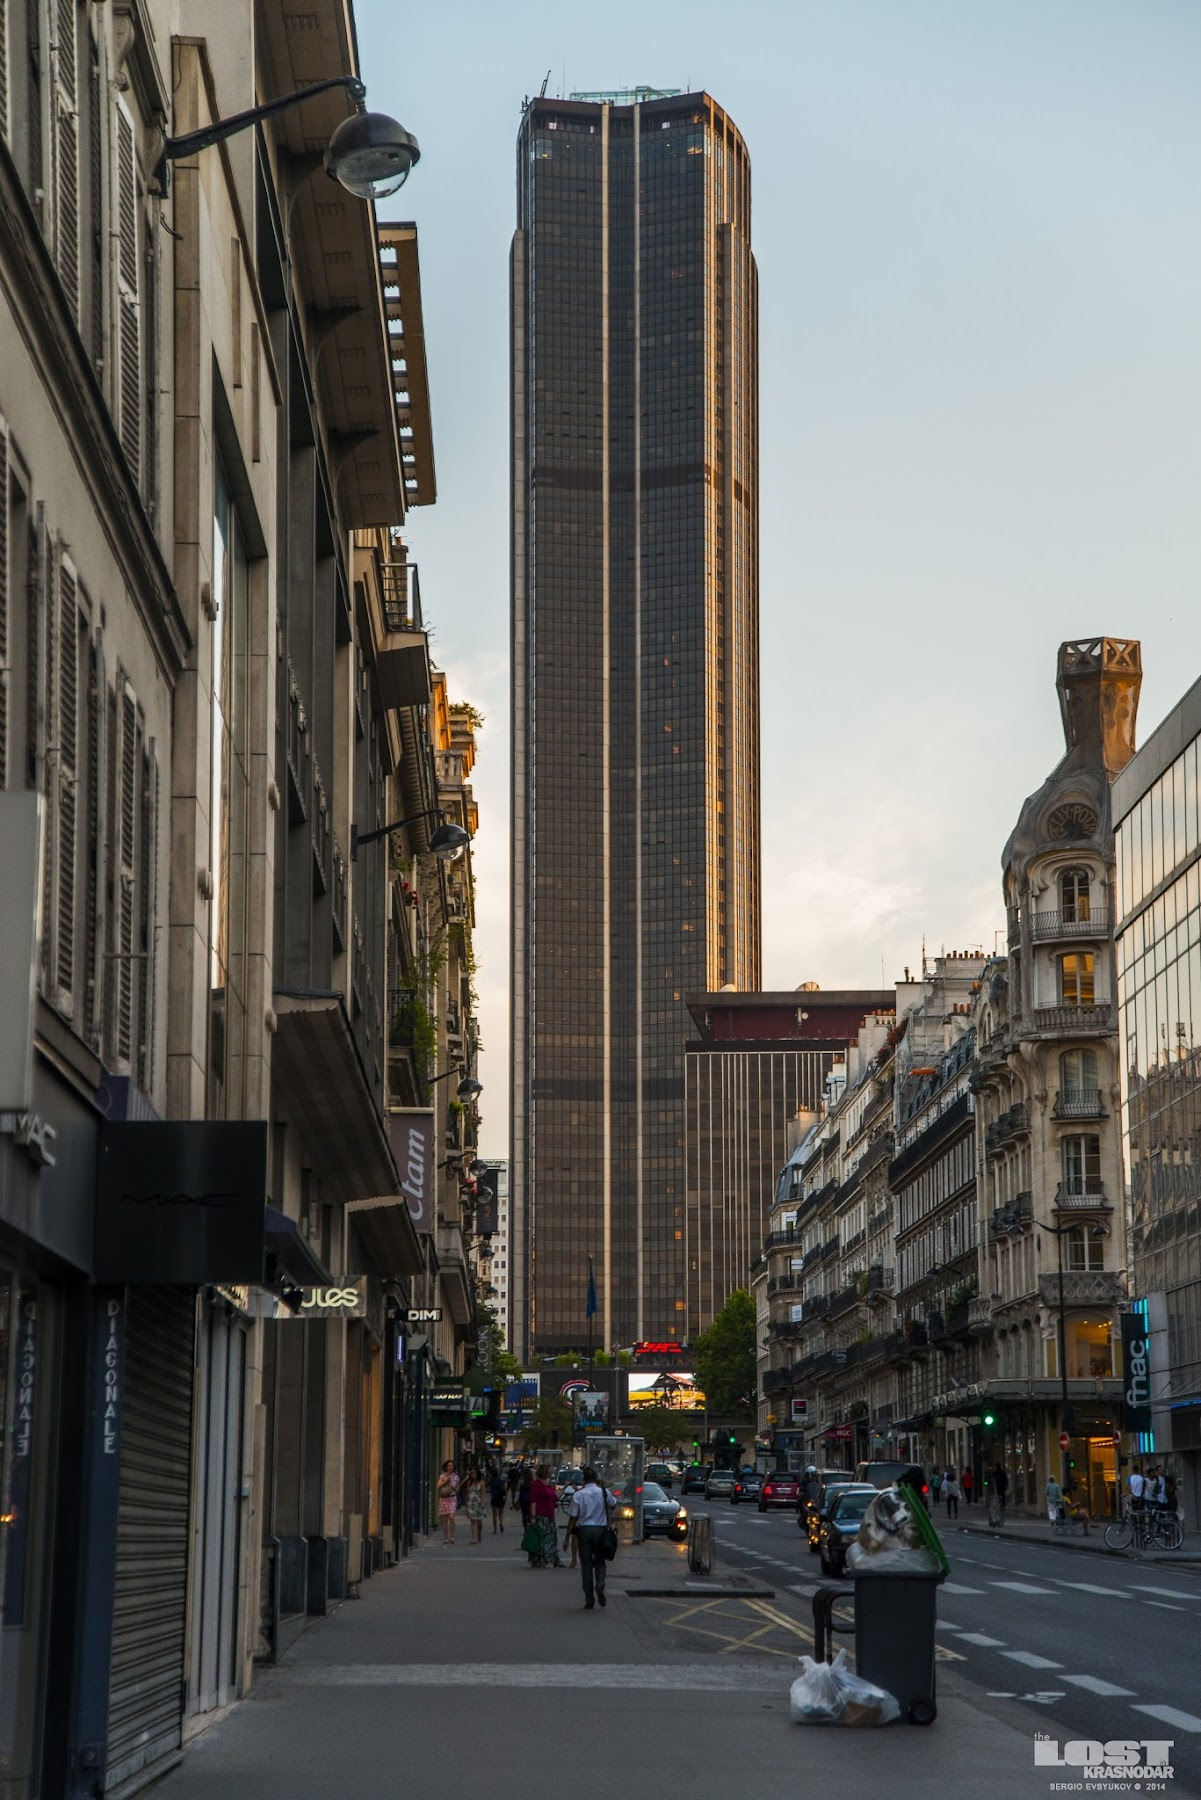 Montparnasse Tower in Paris